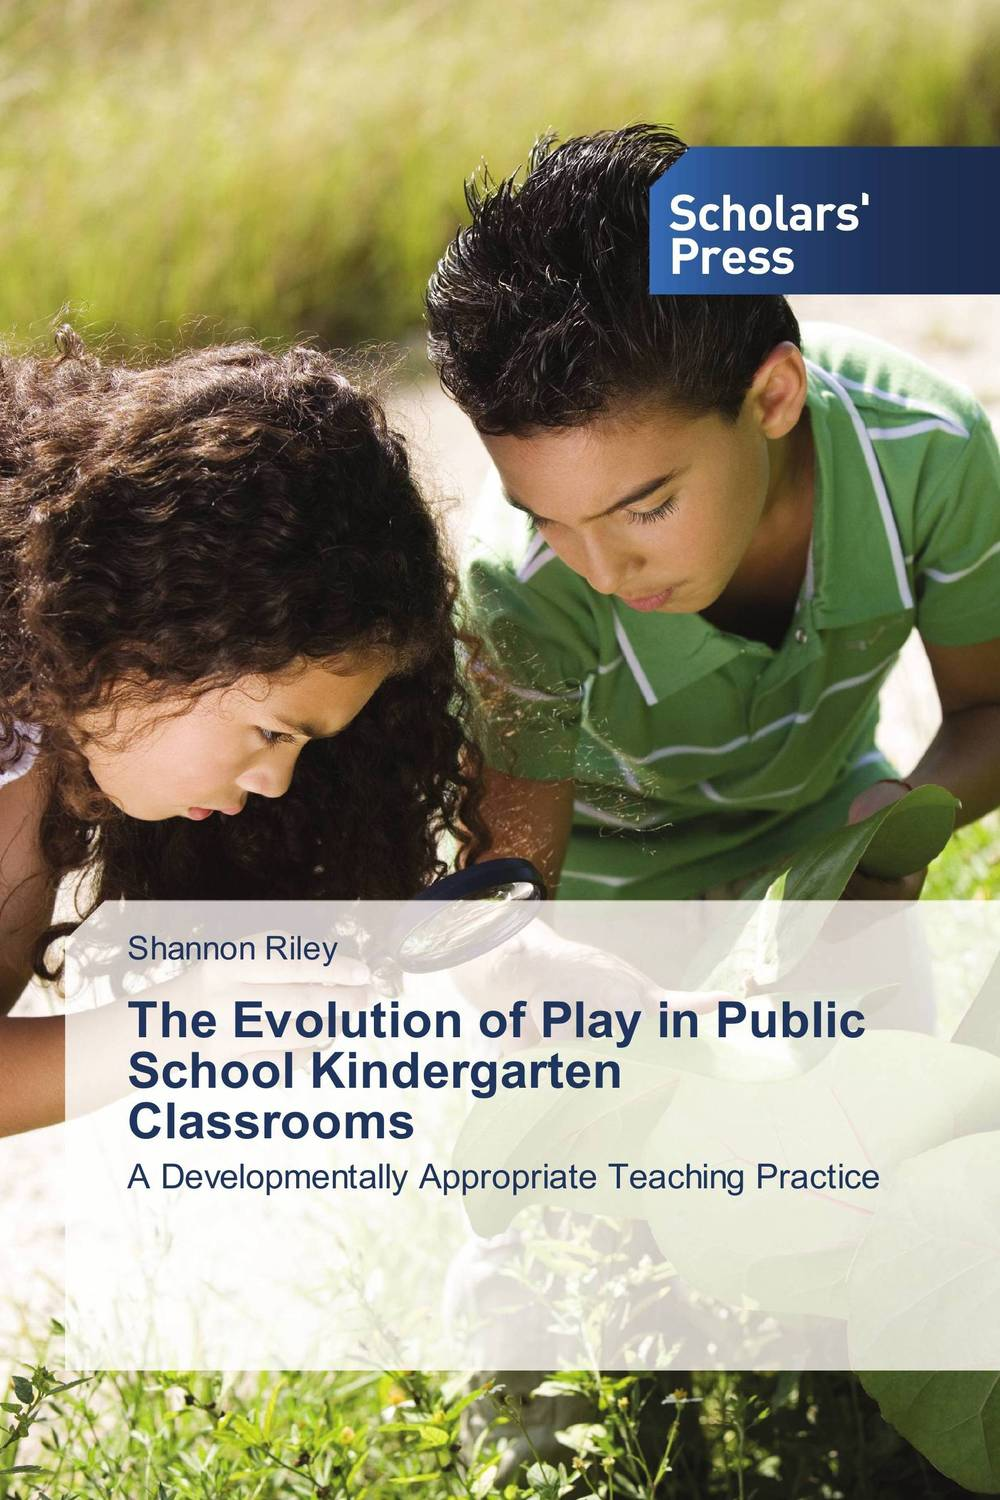 The Evolution of Play in Public School Kindergarten Classrooms driven to distraction